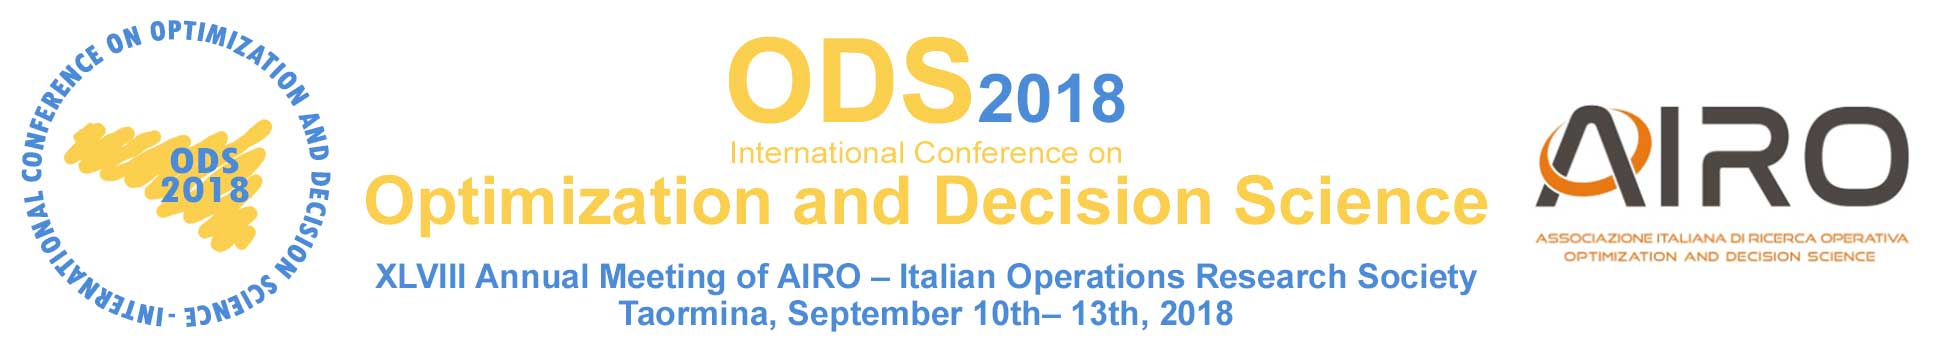 ODS 2018 - Optimization and Decision Science 2018